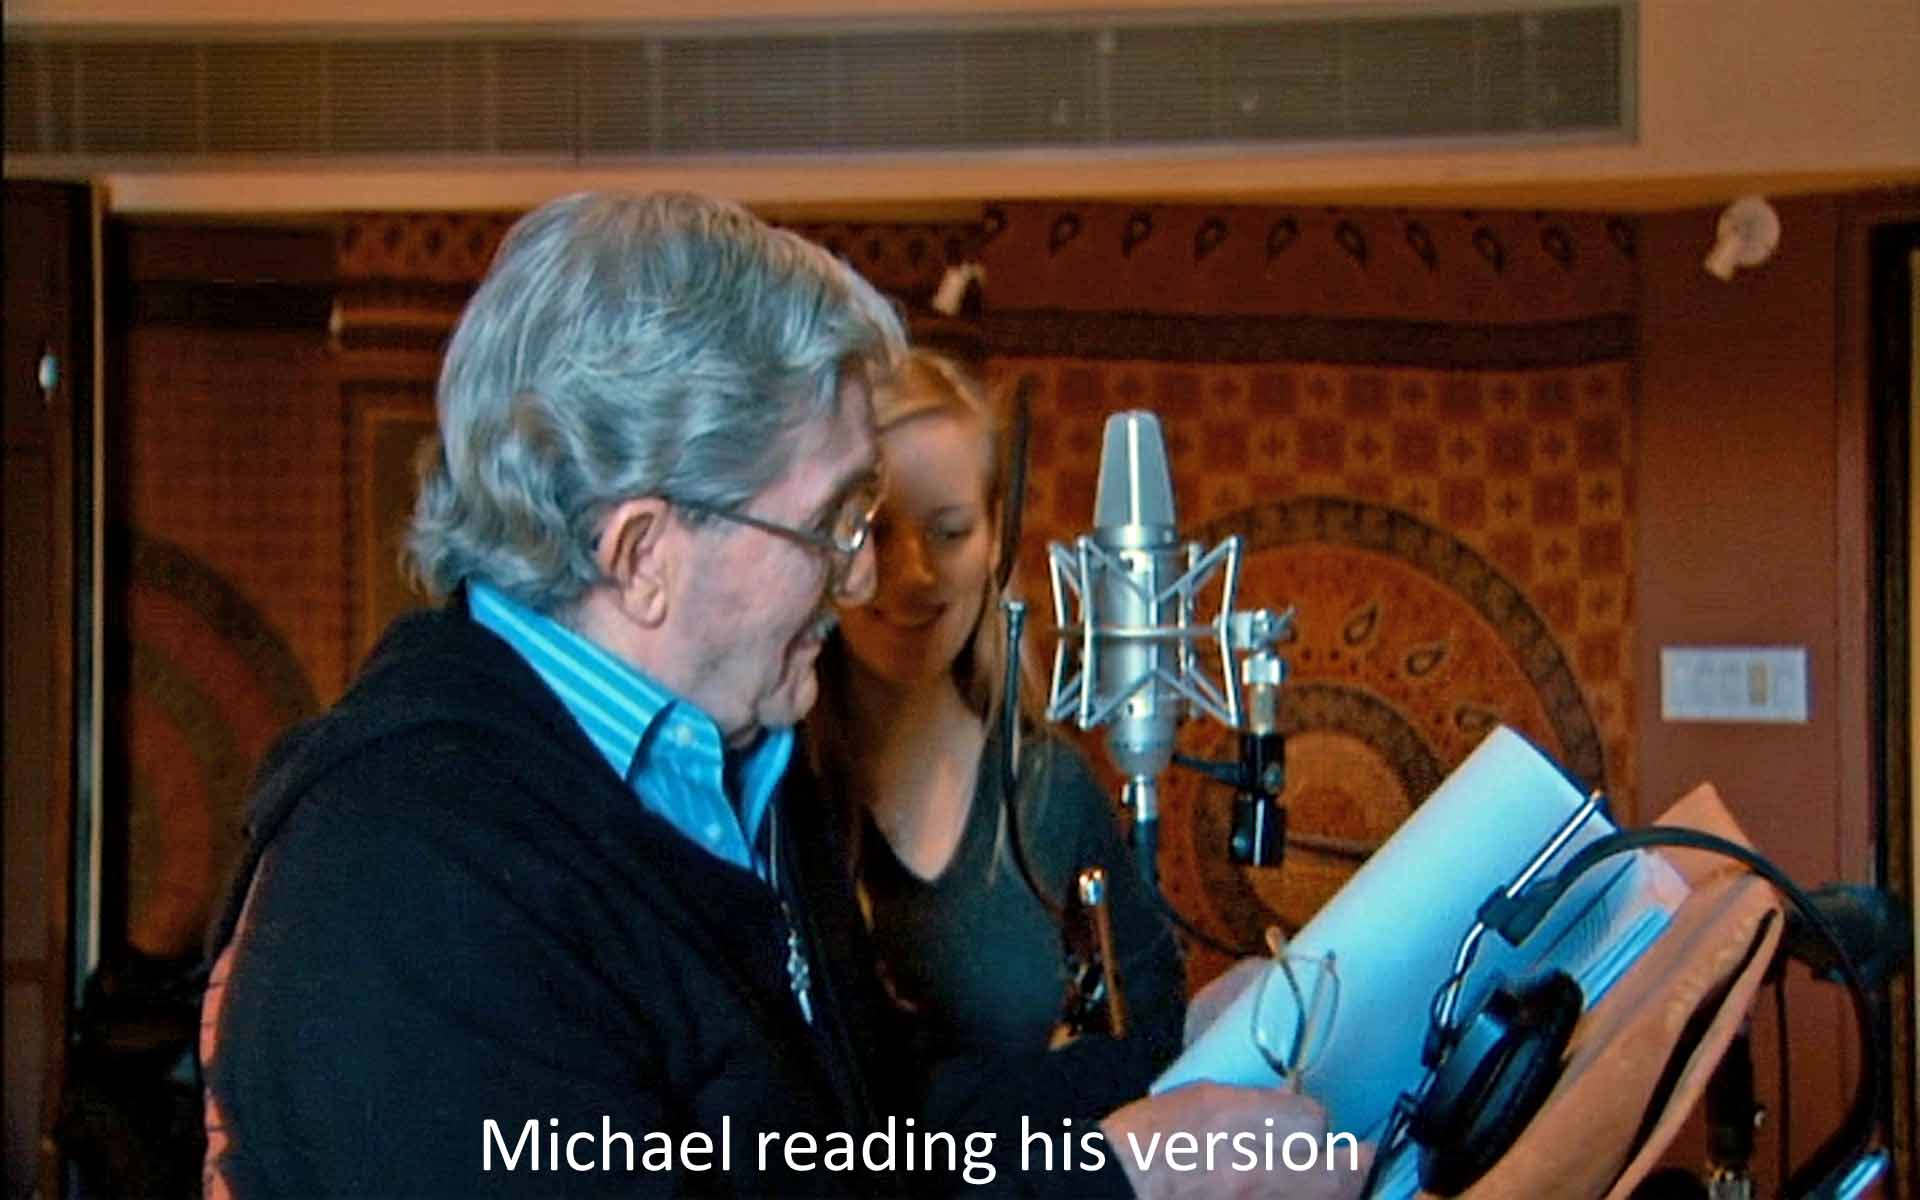 Michael reading his version